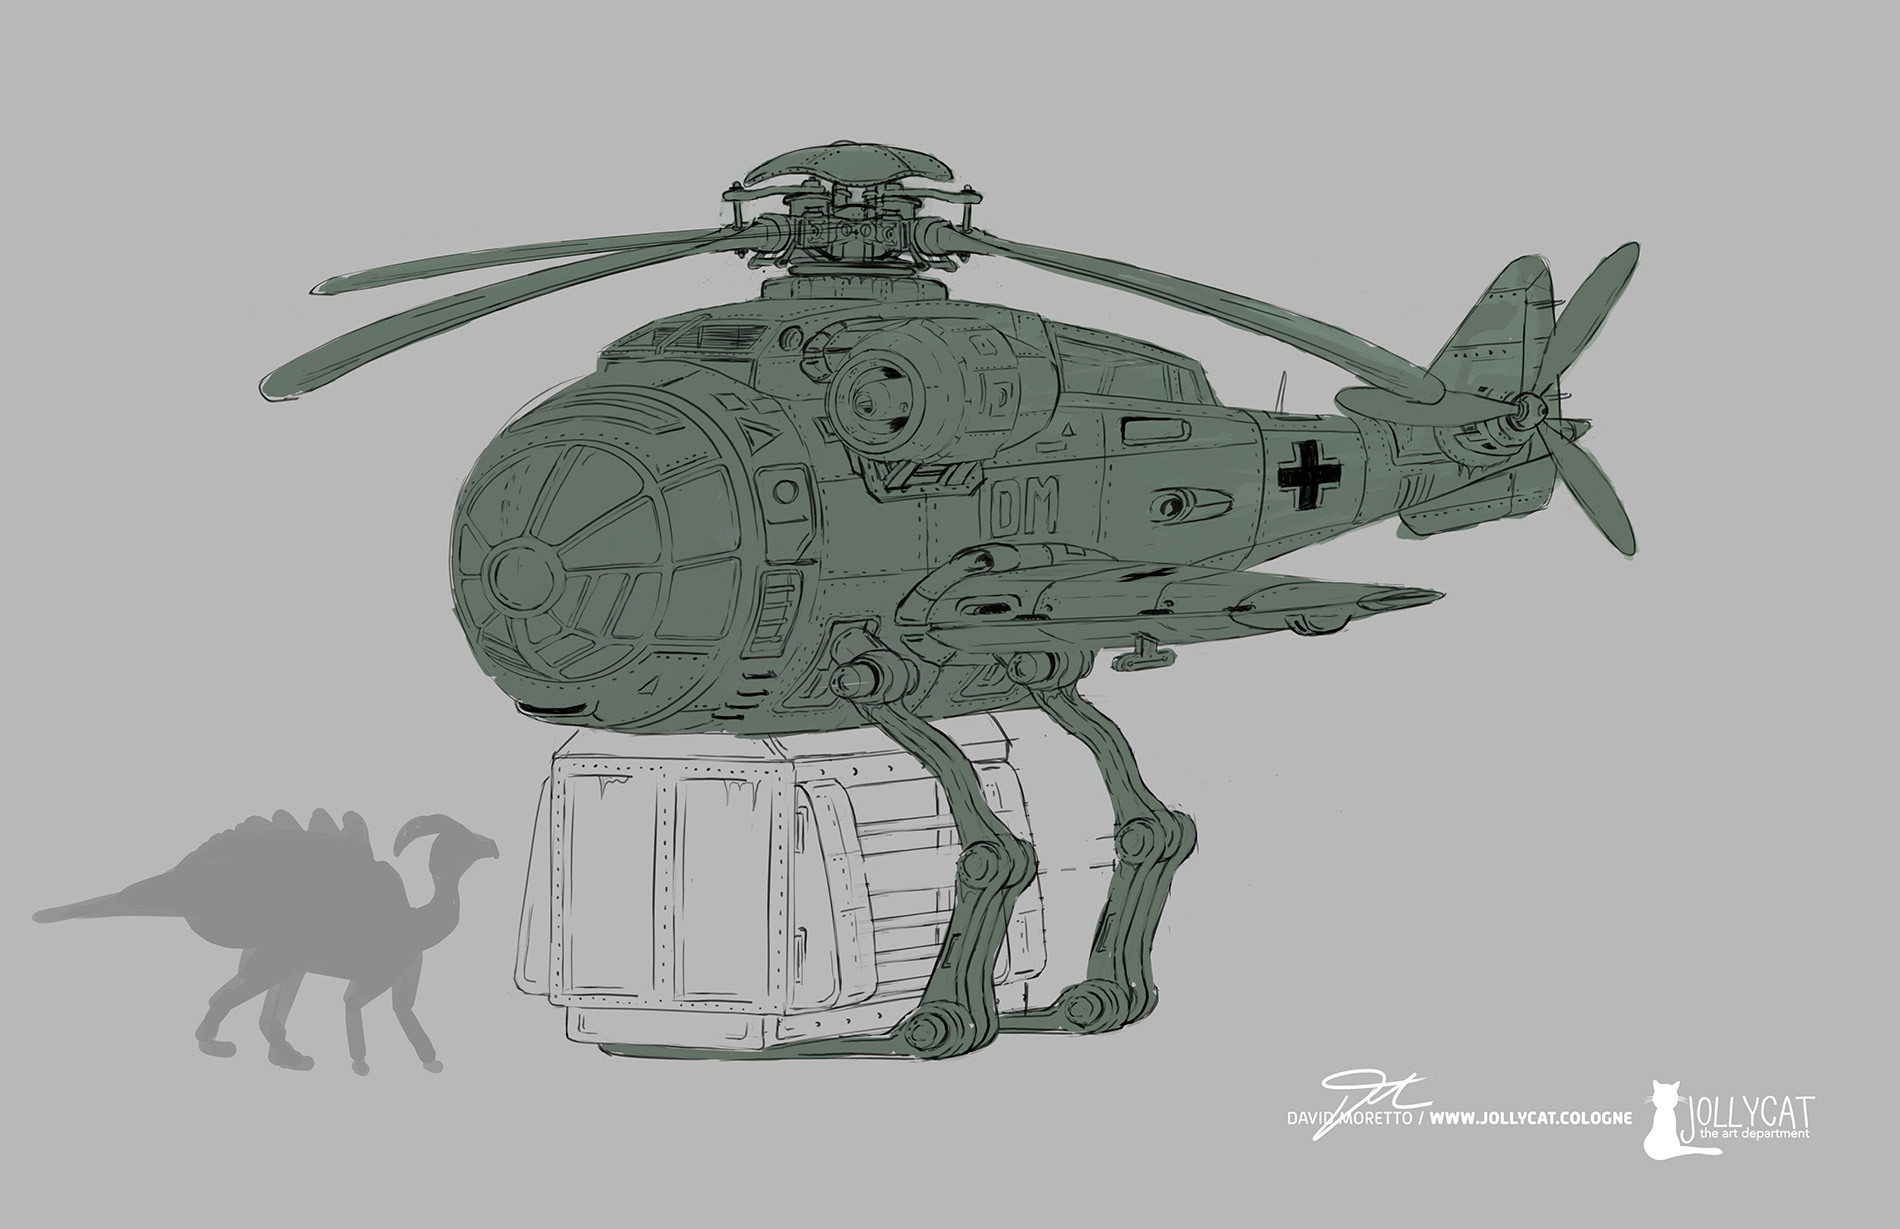 David moretto gottesgreifer conceptart 002a